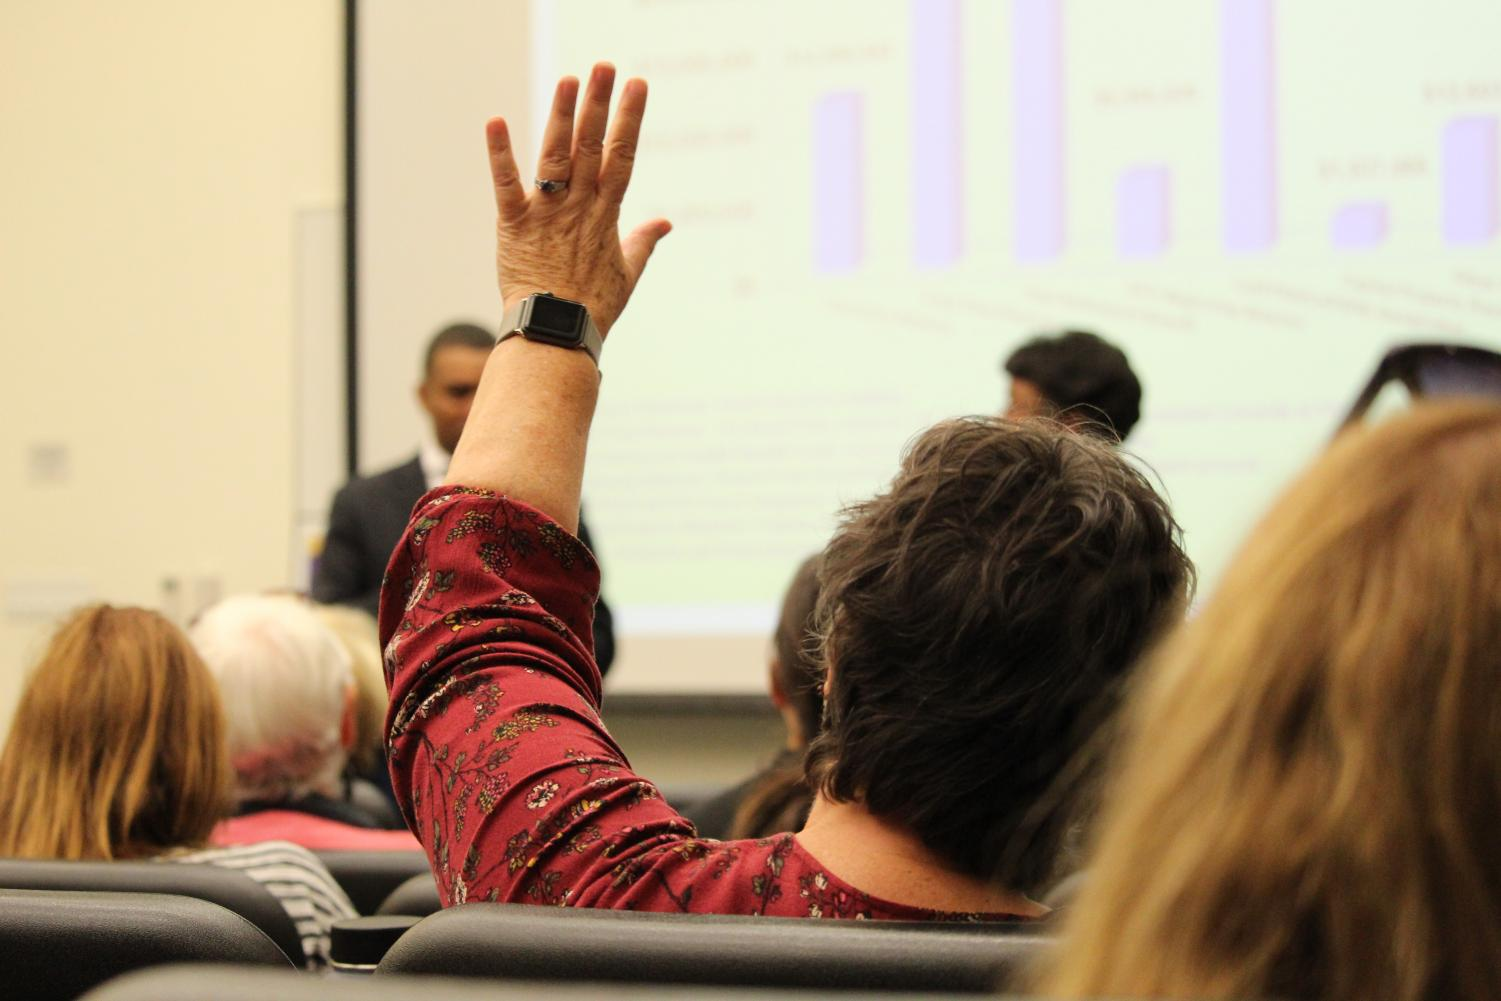 New state funding formula for community colleges was explained by district officials to faculty, staff and students at San Diego City College. By David Ahumada/City Times